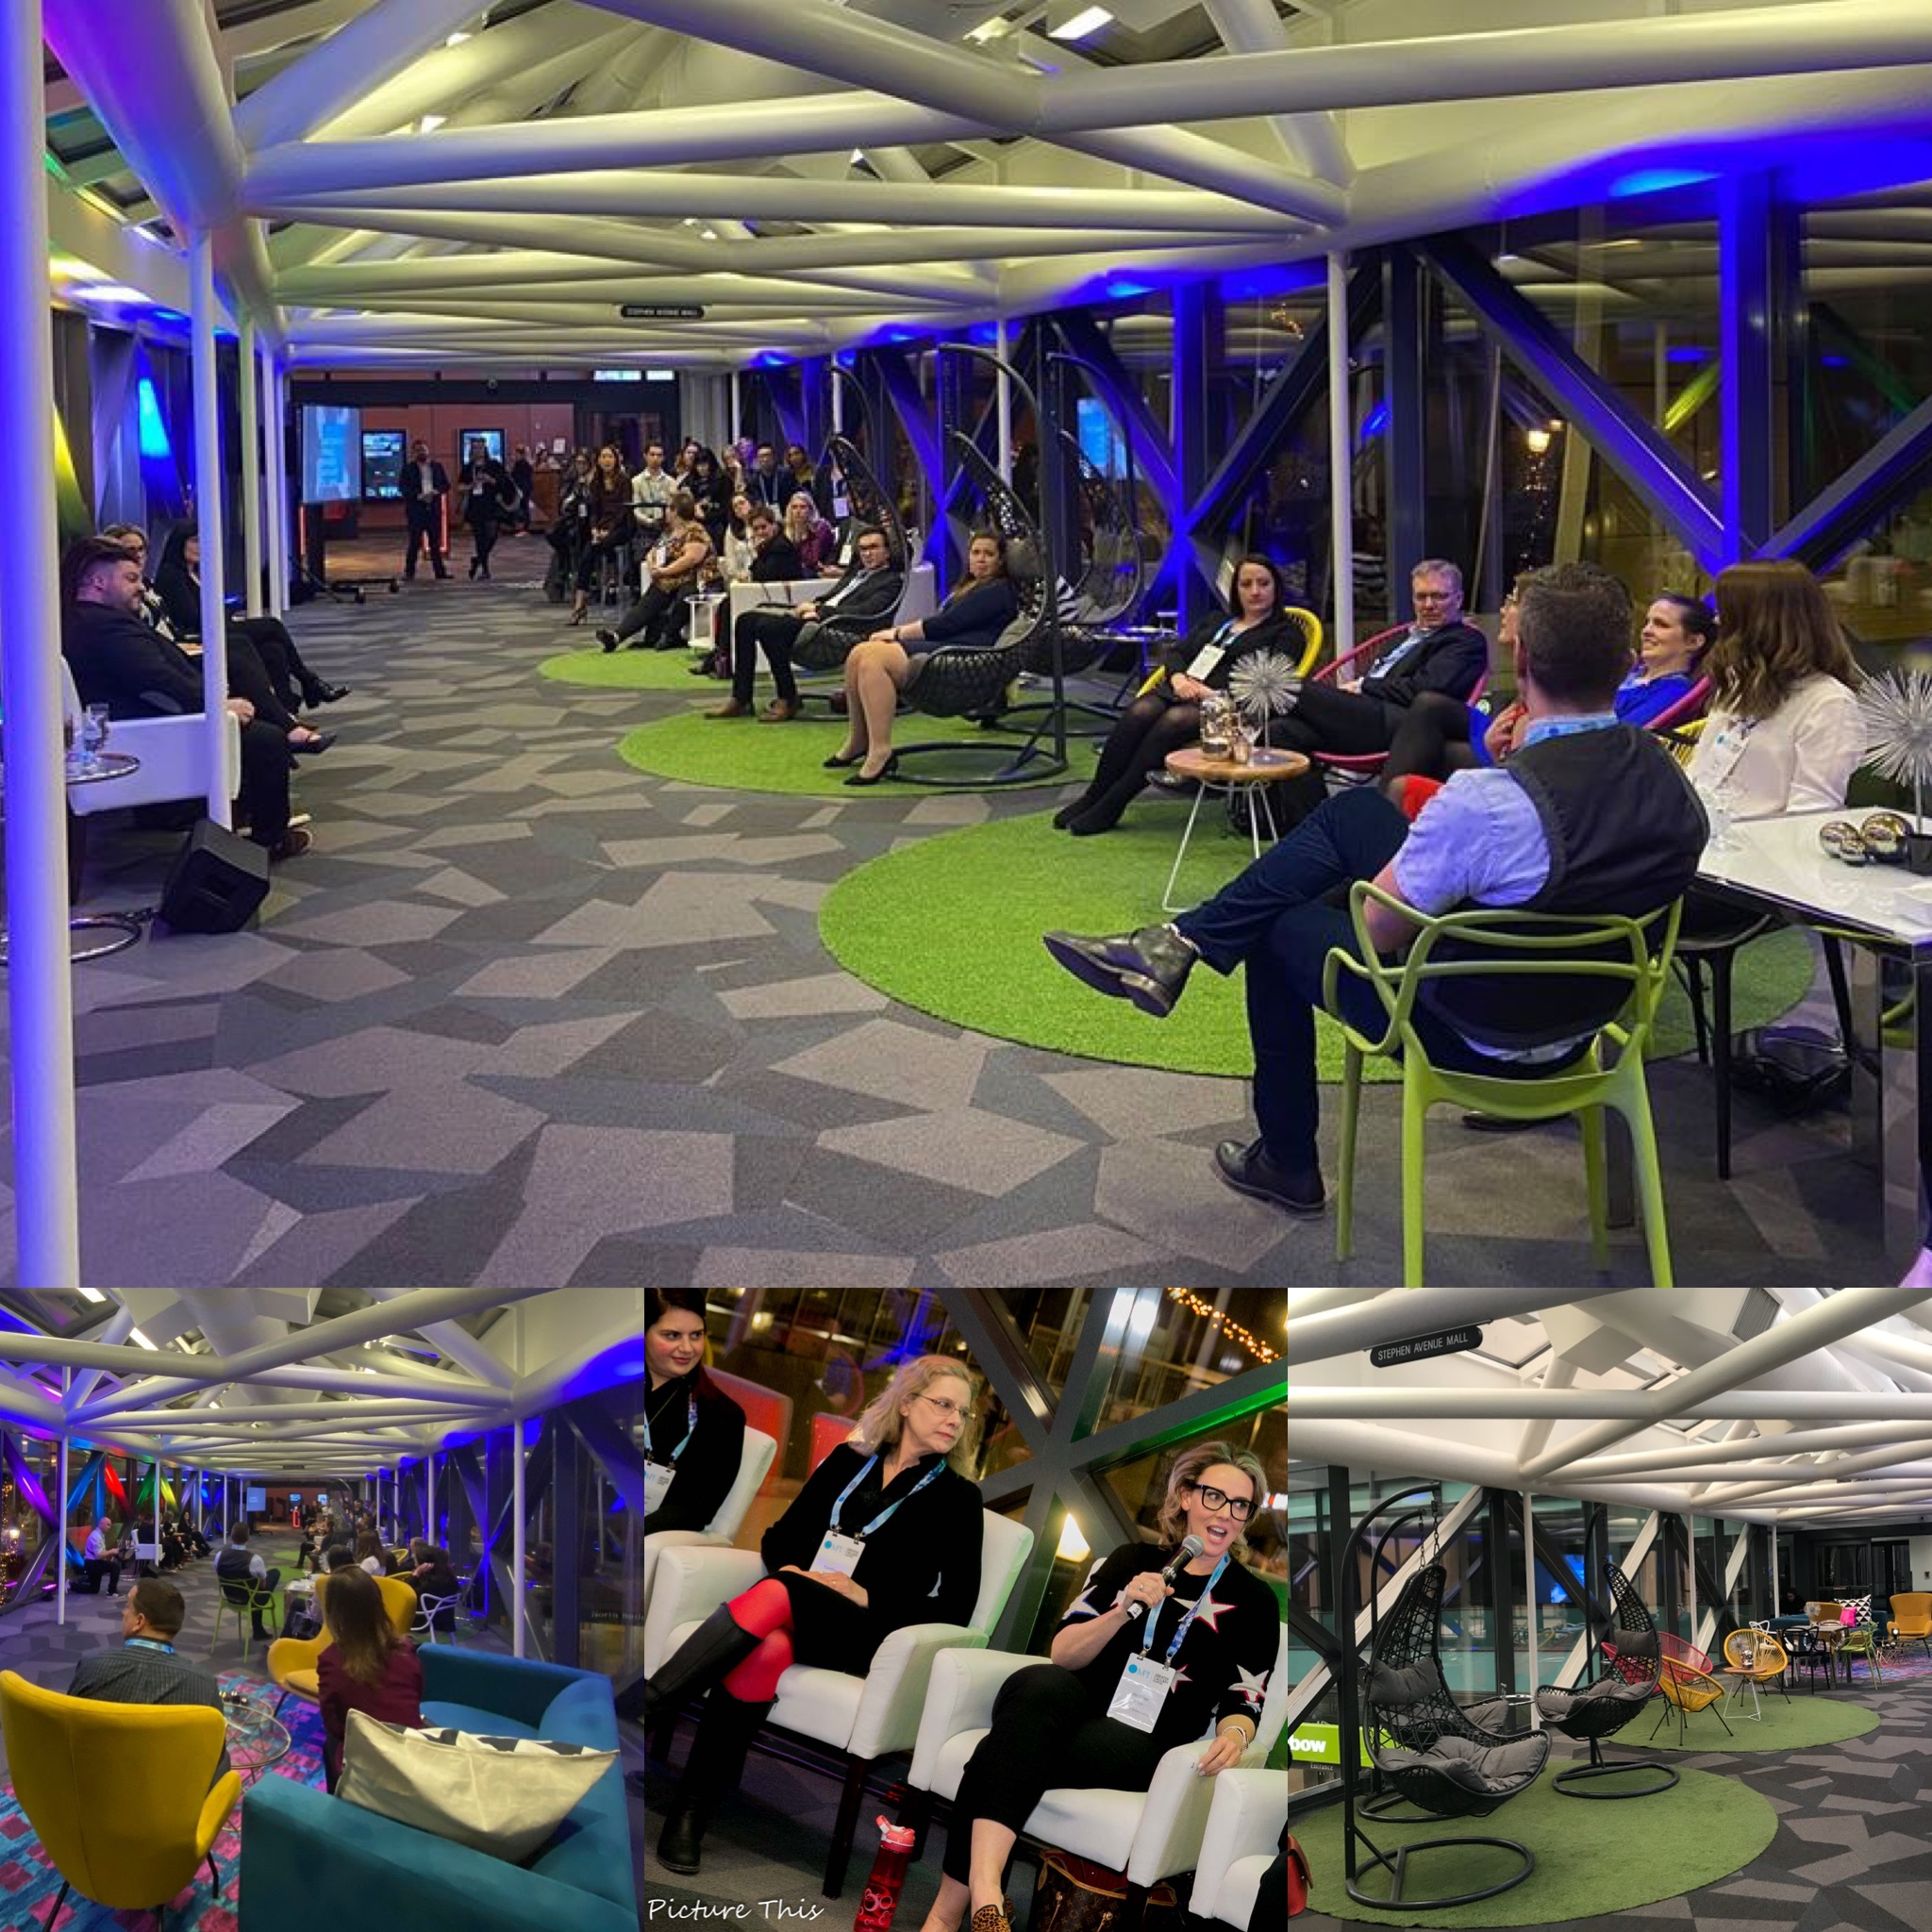 Unconventional Venues - What to Consider When Working Outside a Typical Venue